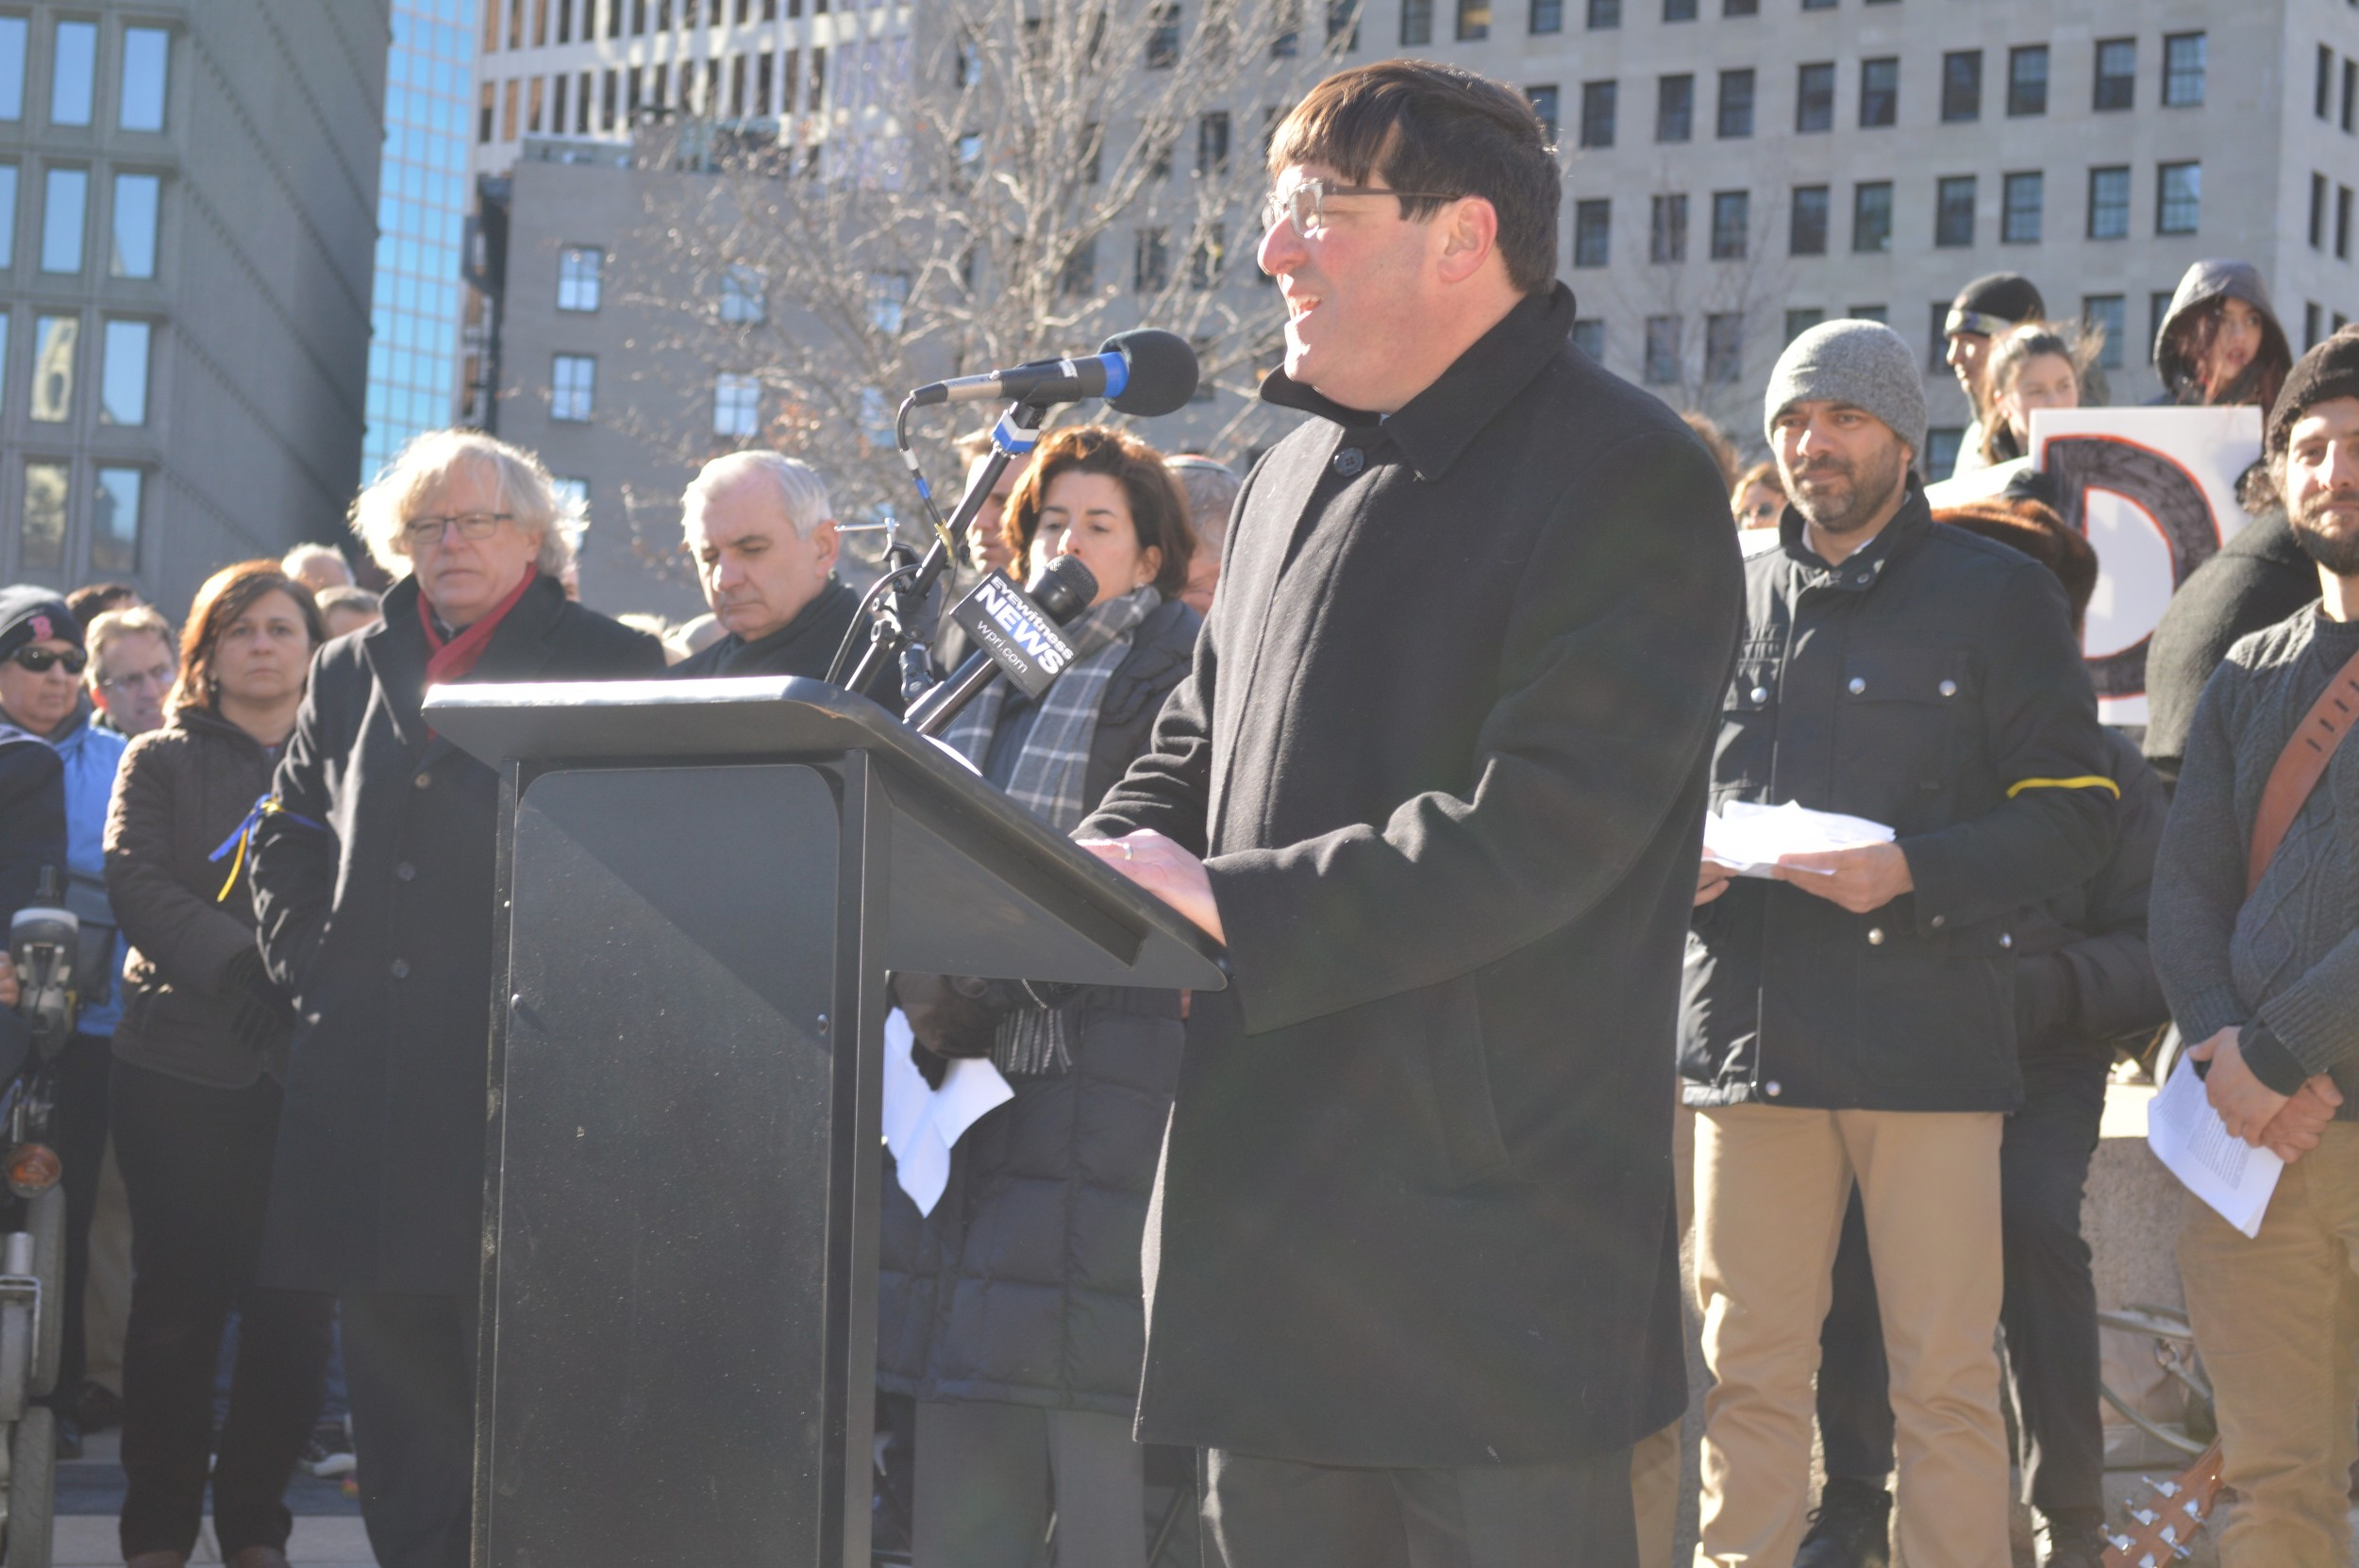 Jeffrey Savit, president and CEO of the Jewish Alliance of Greater Rhode Island, was one of many community leaders who spoke.